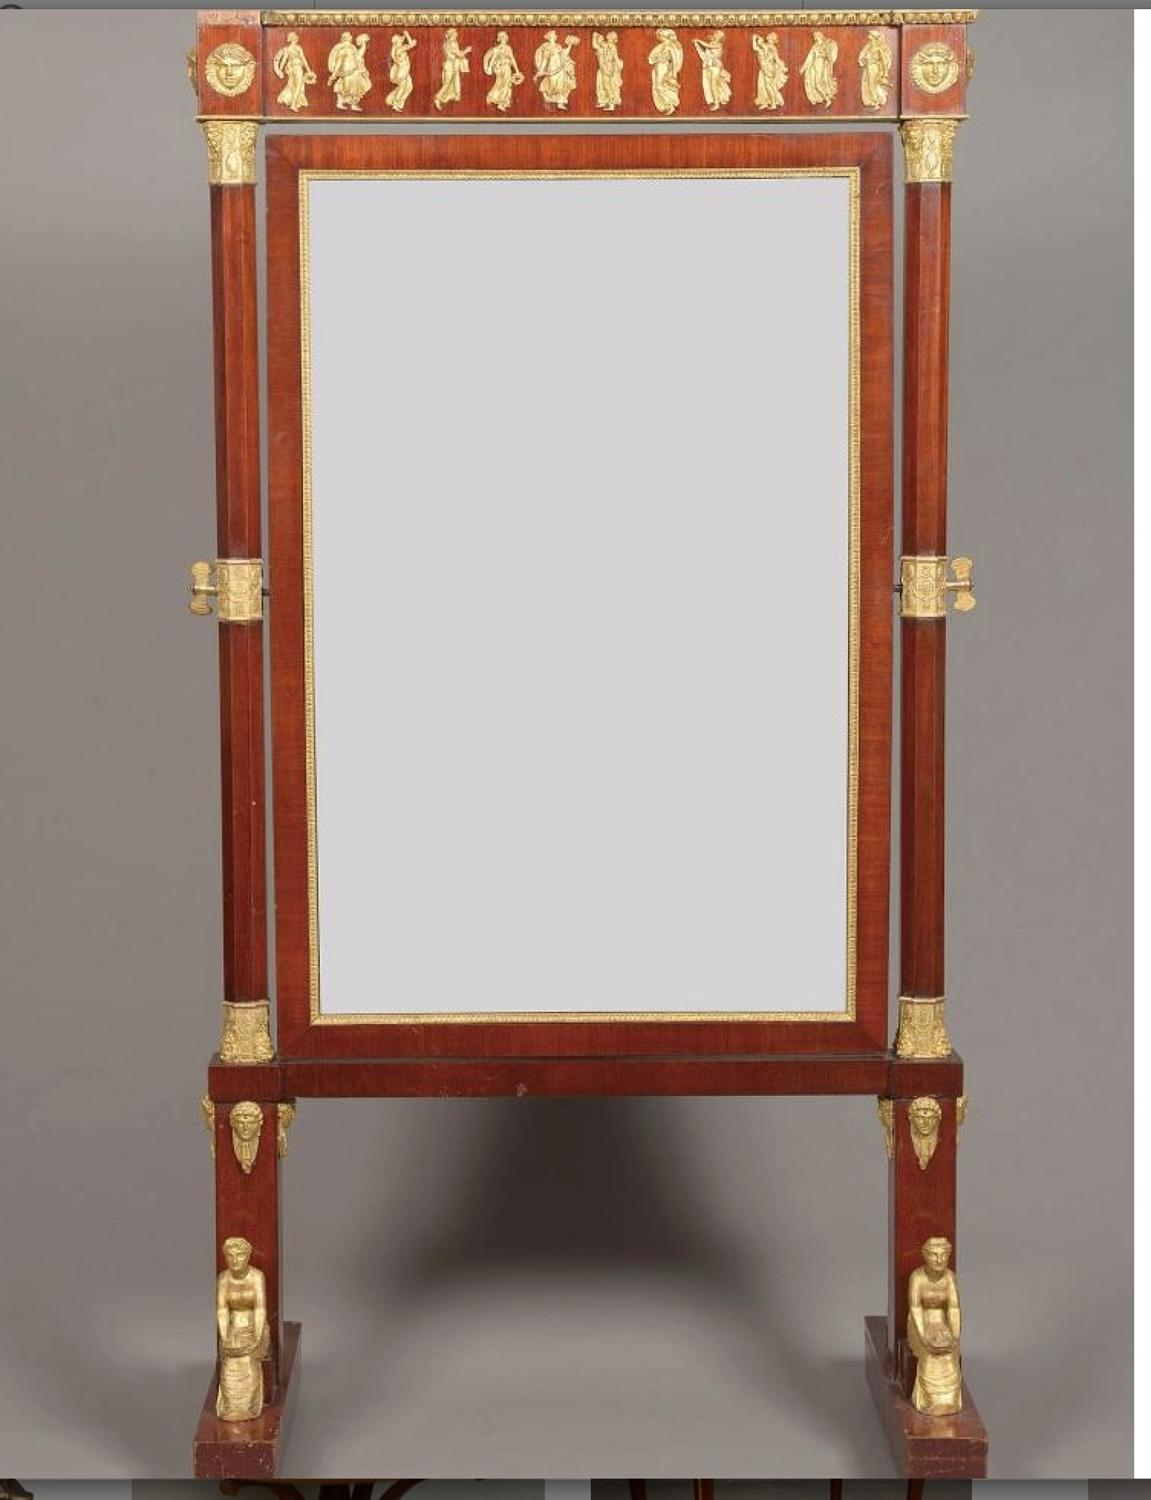 A FRENCH EMPIRE PERIOD CHEVAL MIRROR